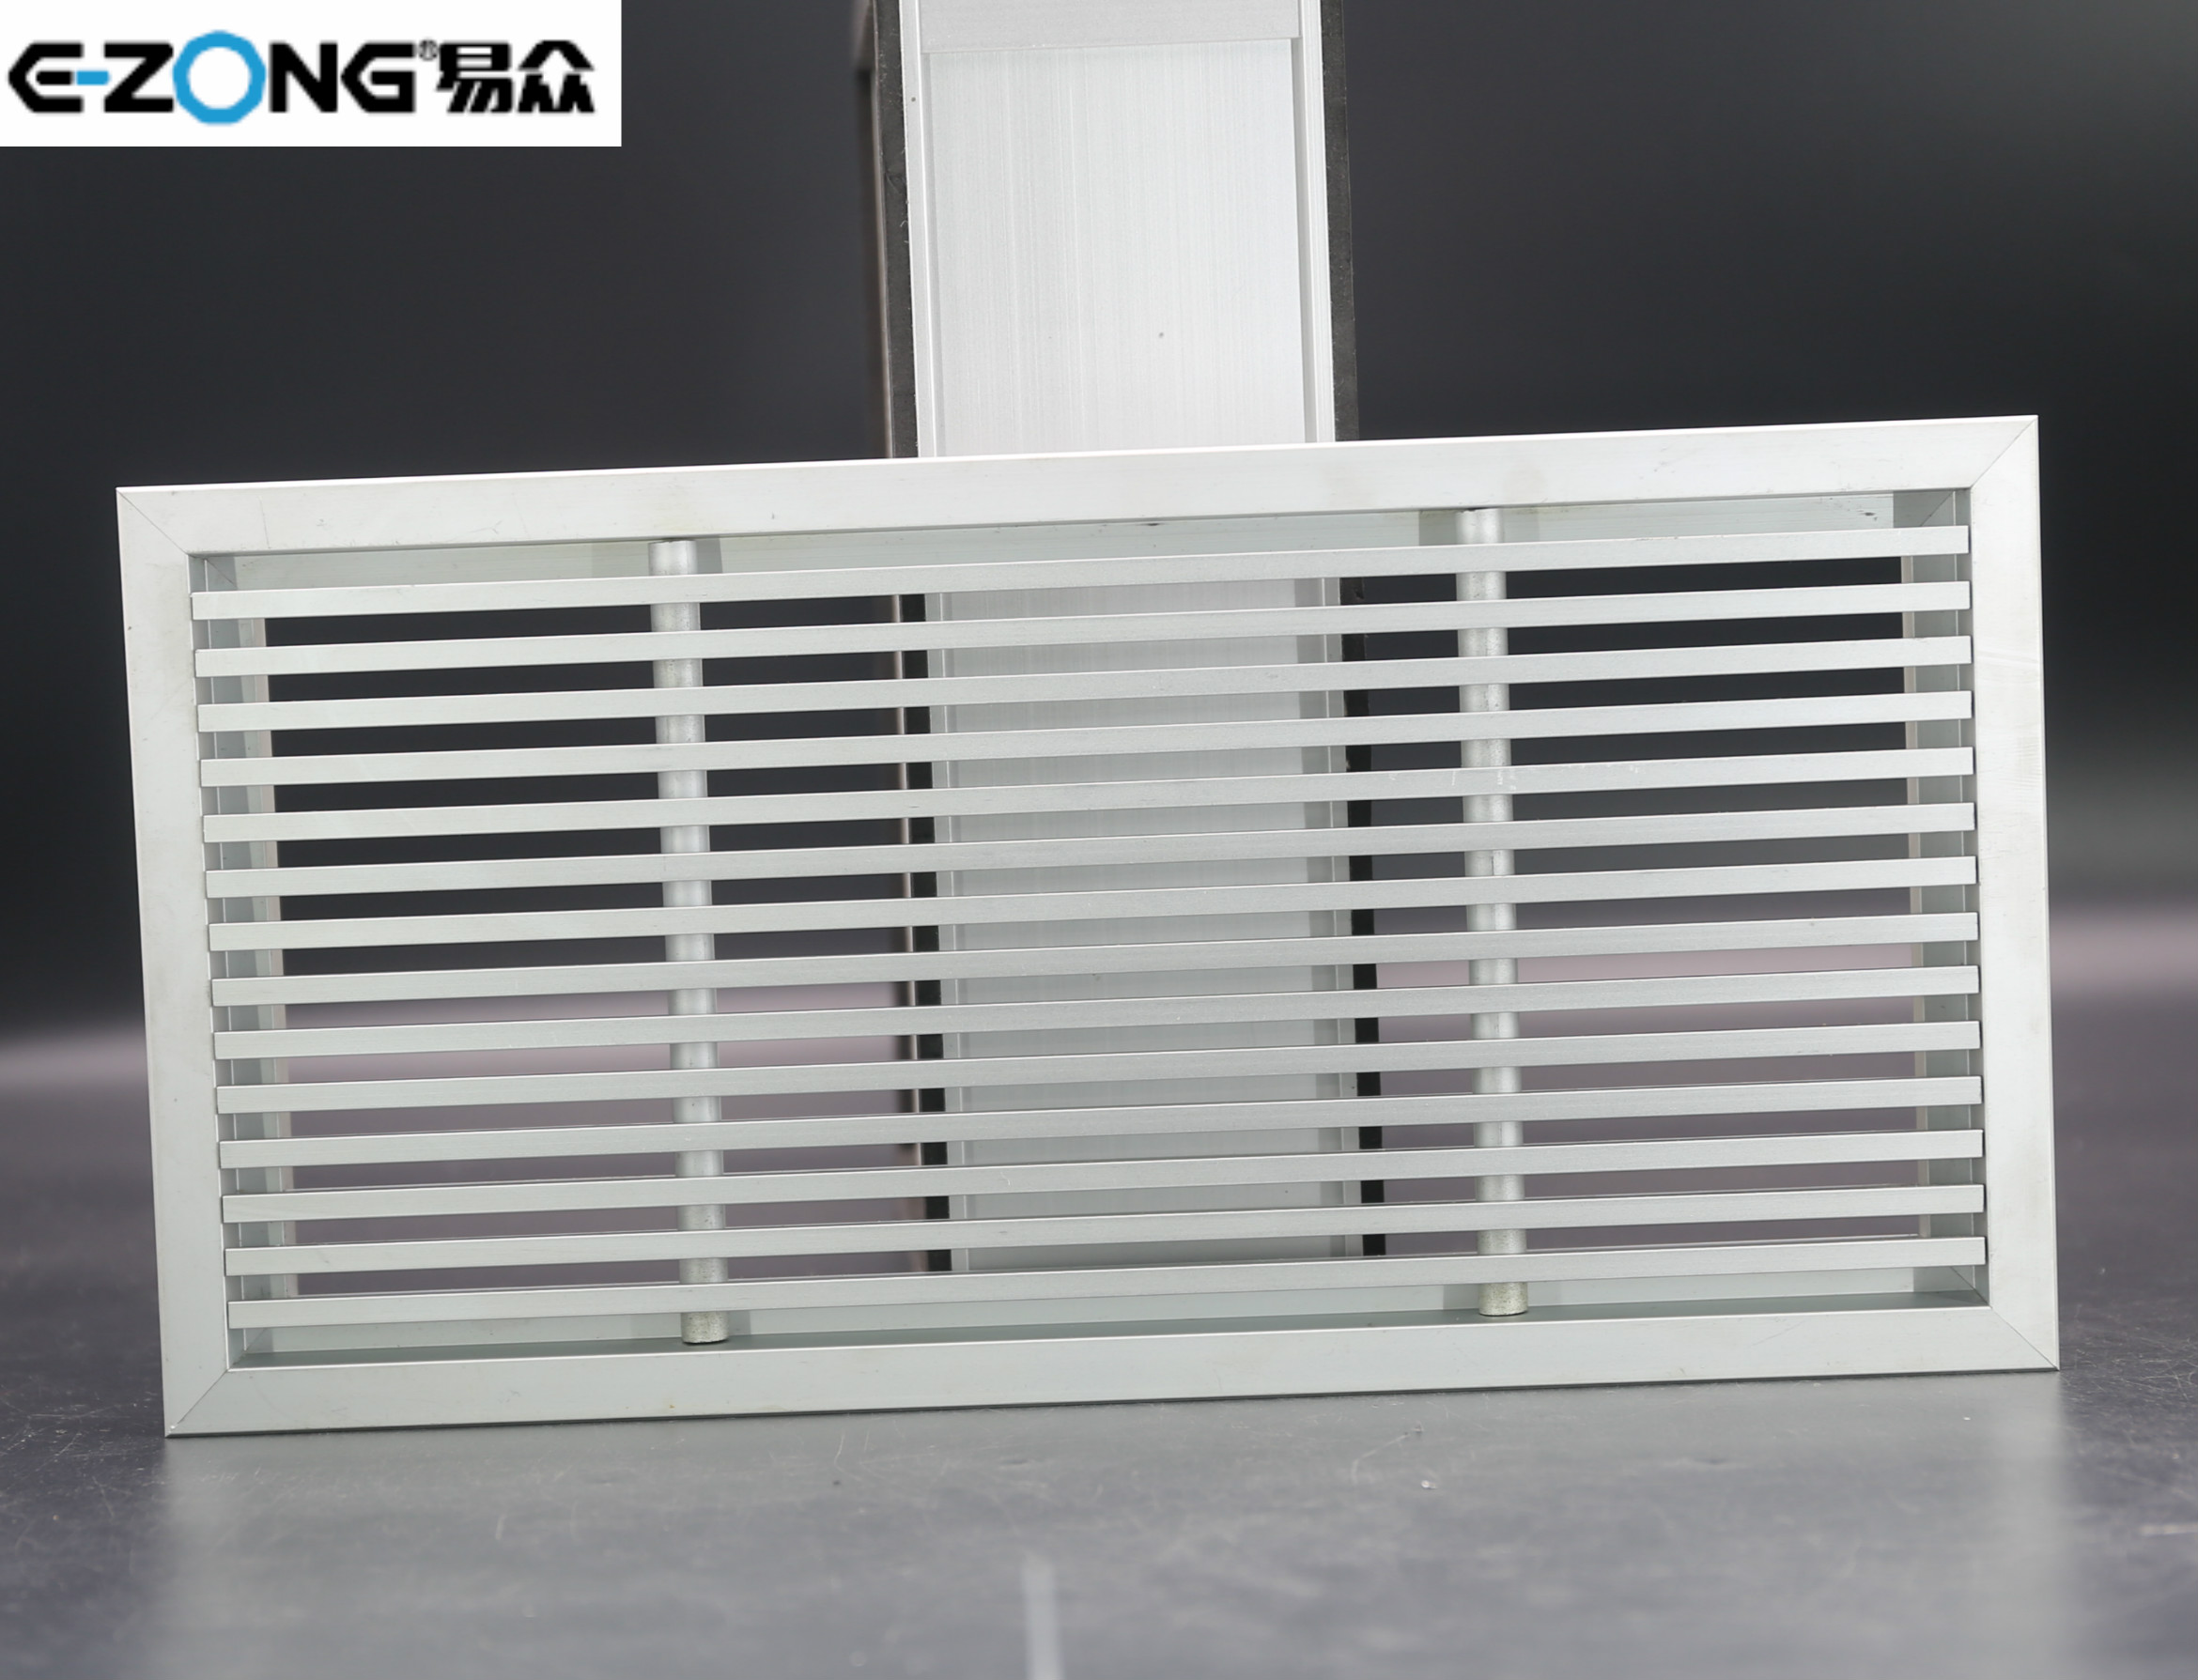 Floor air grille with 0° angle blades